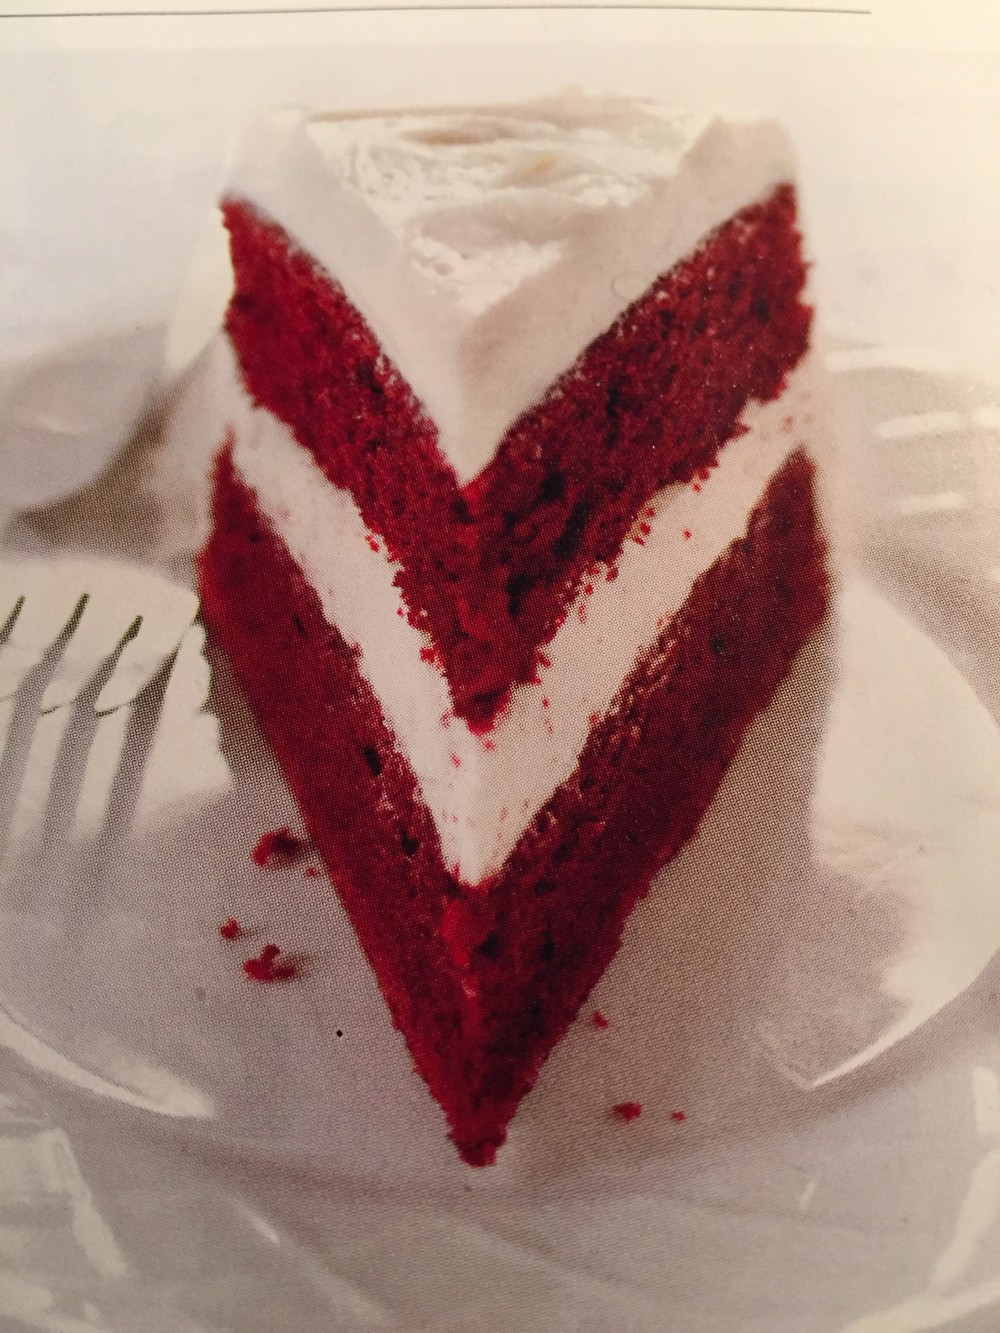 Red Velvet Cake Recipe Alton Brown